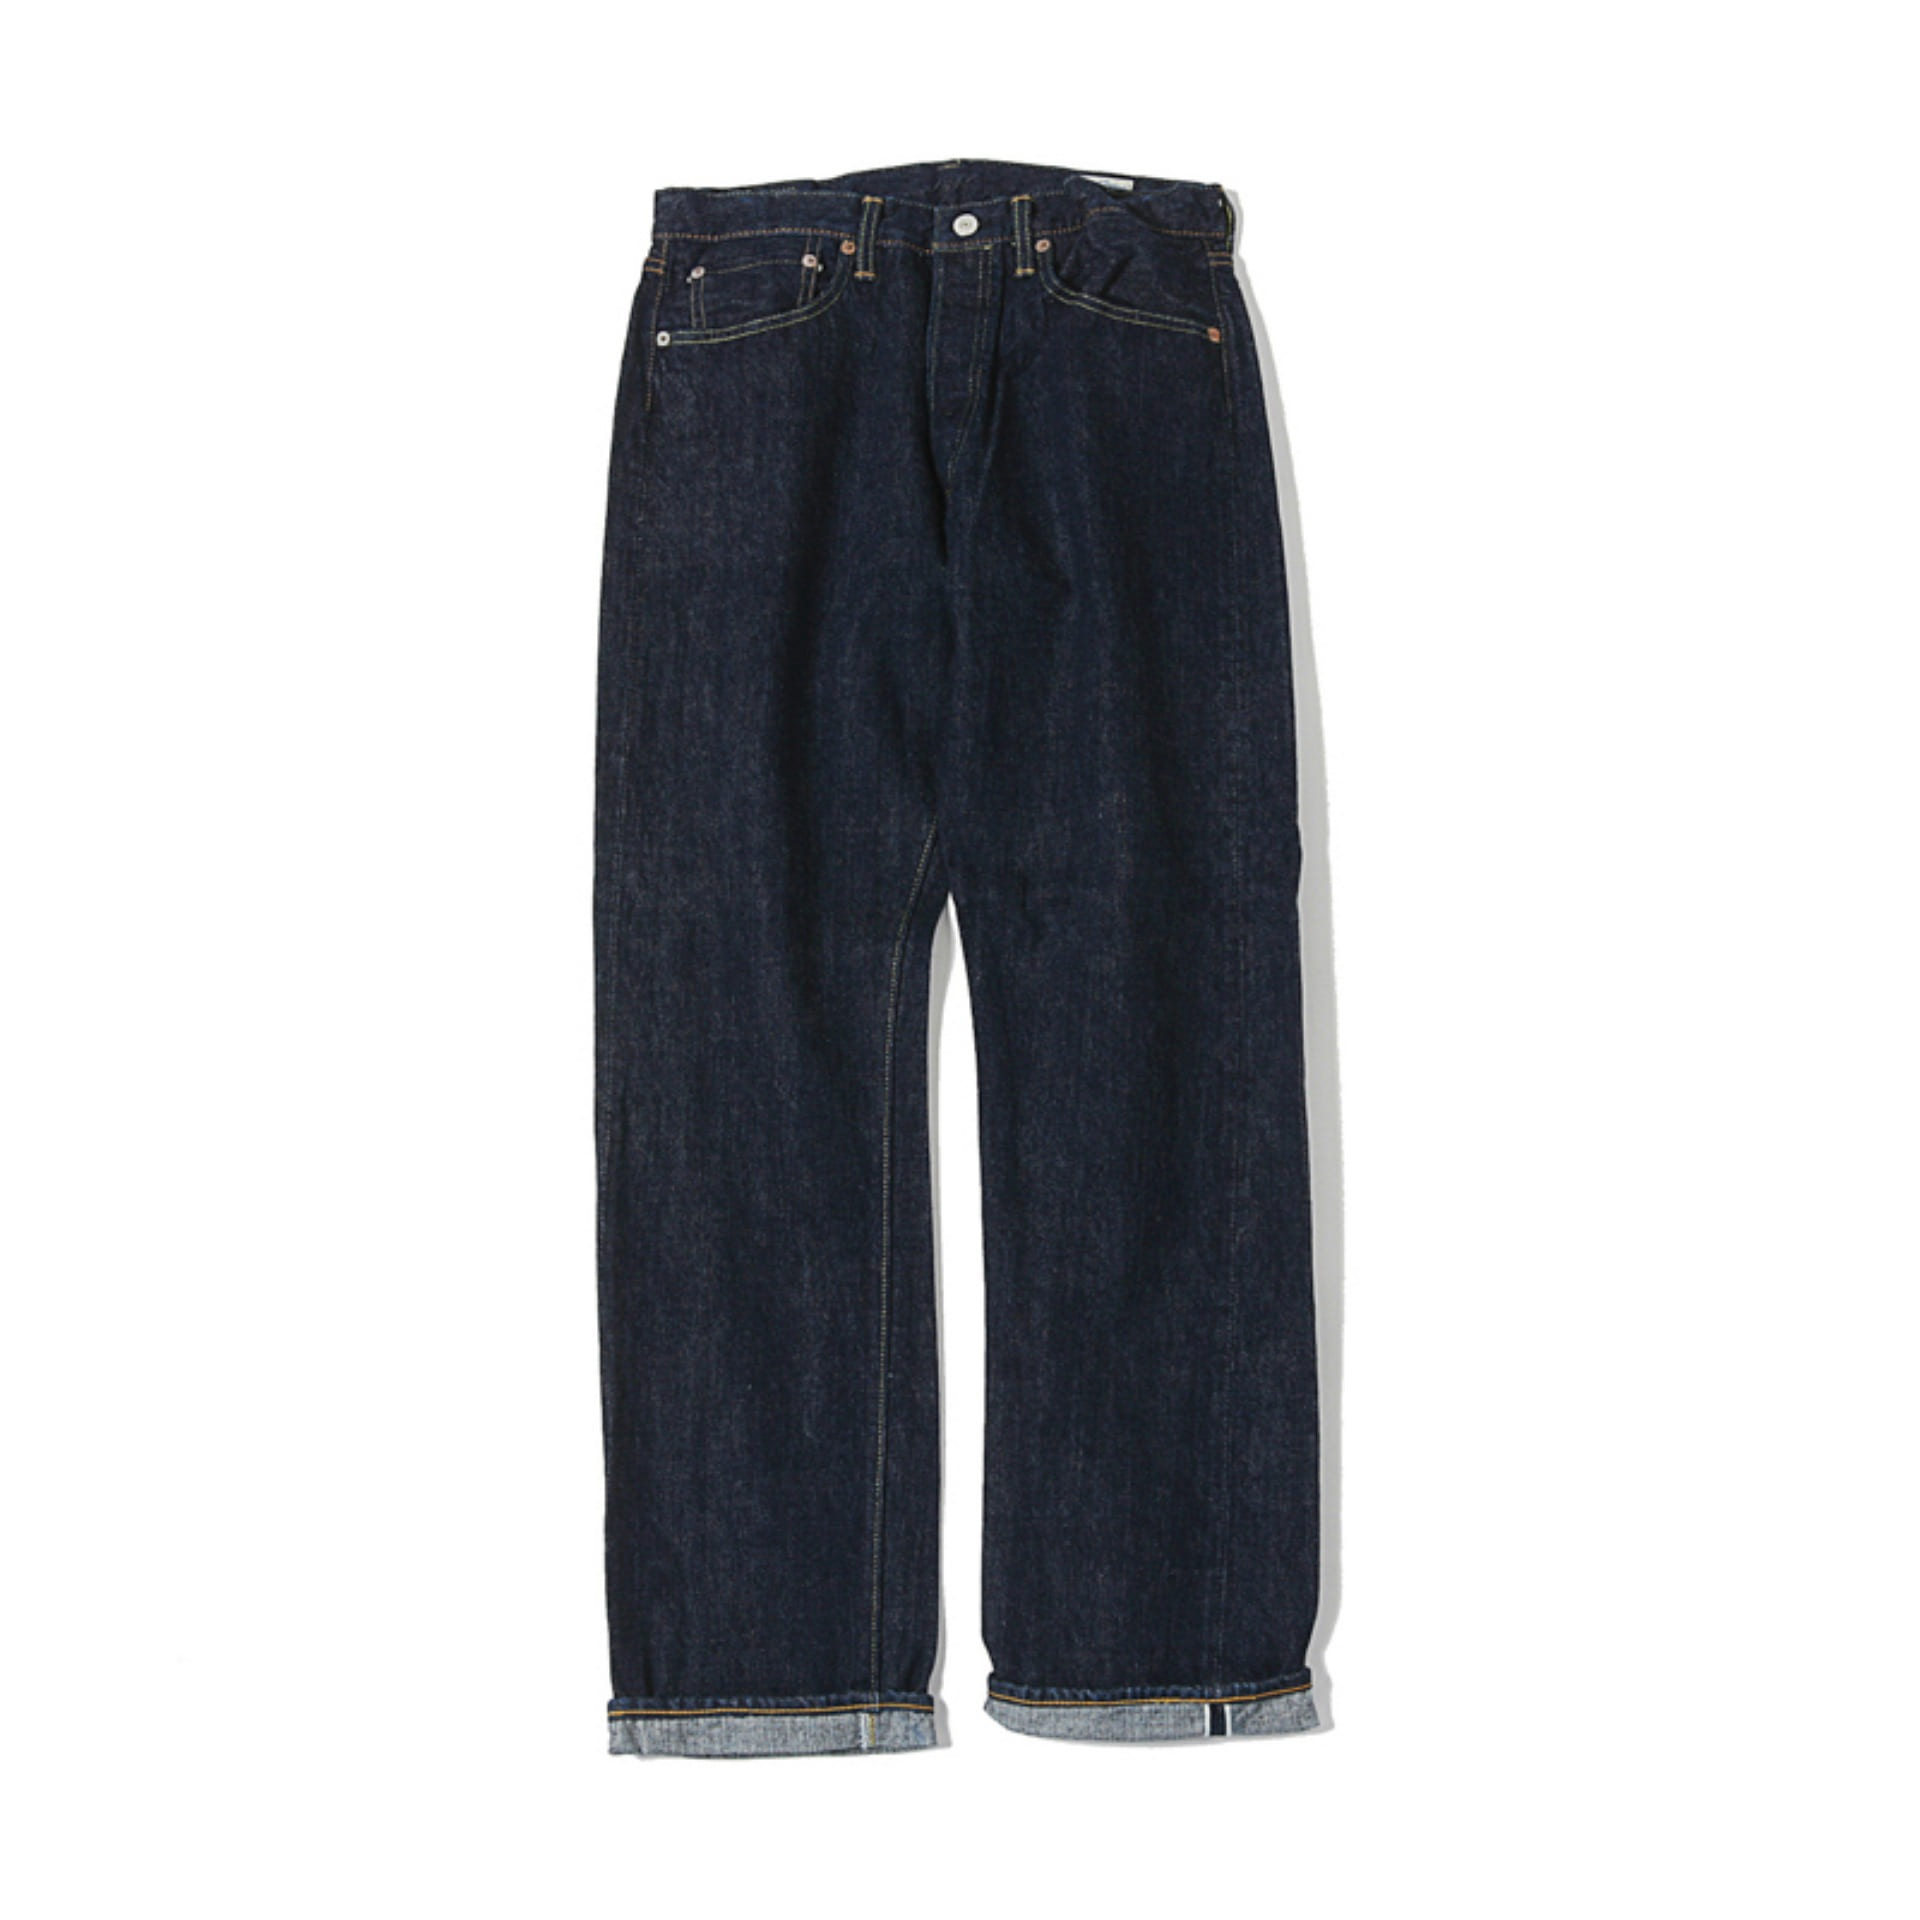 (Restock)ORSLOW 105 SELVEDGE (One Washed)